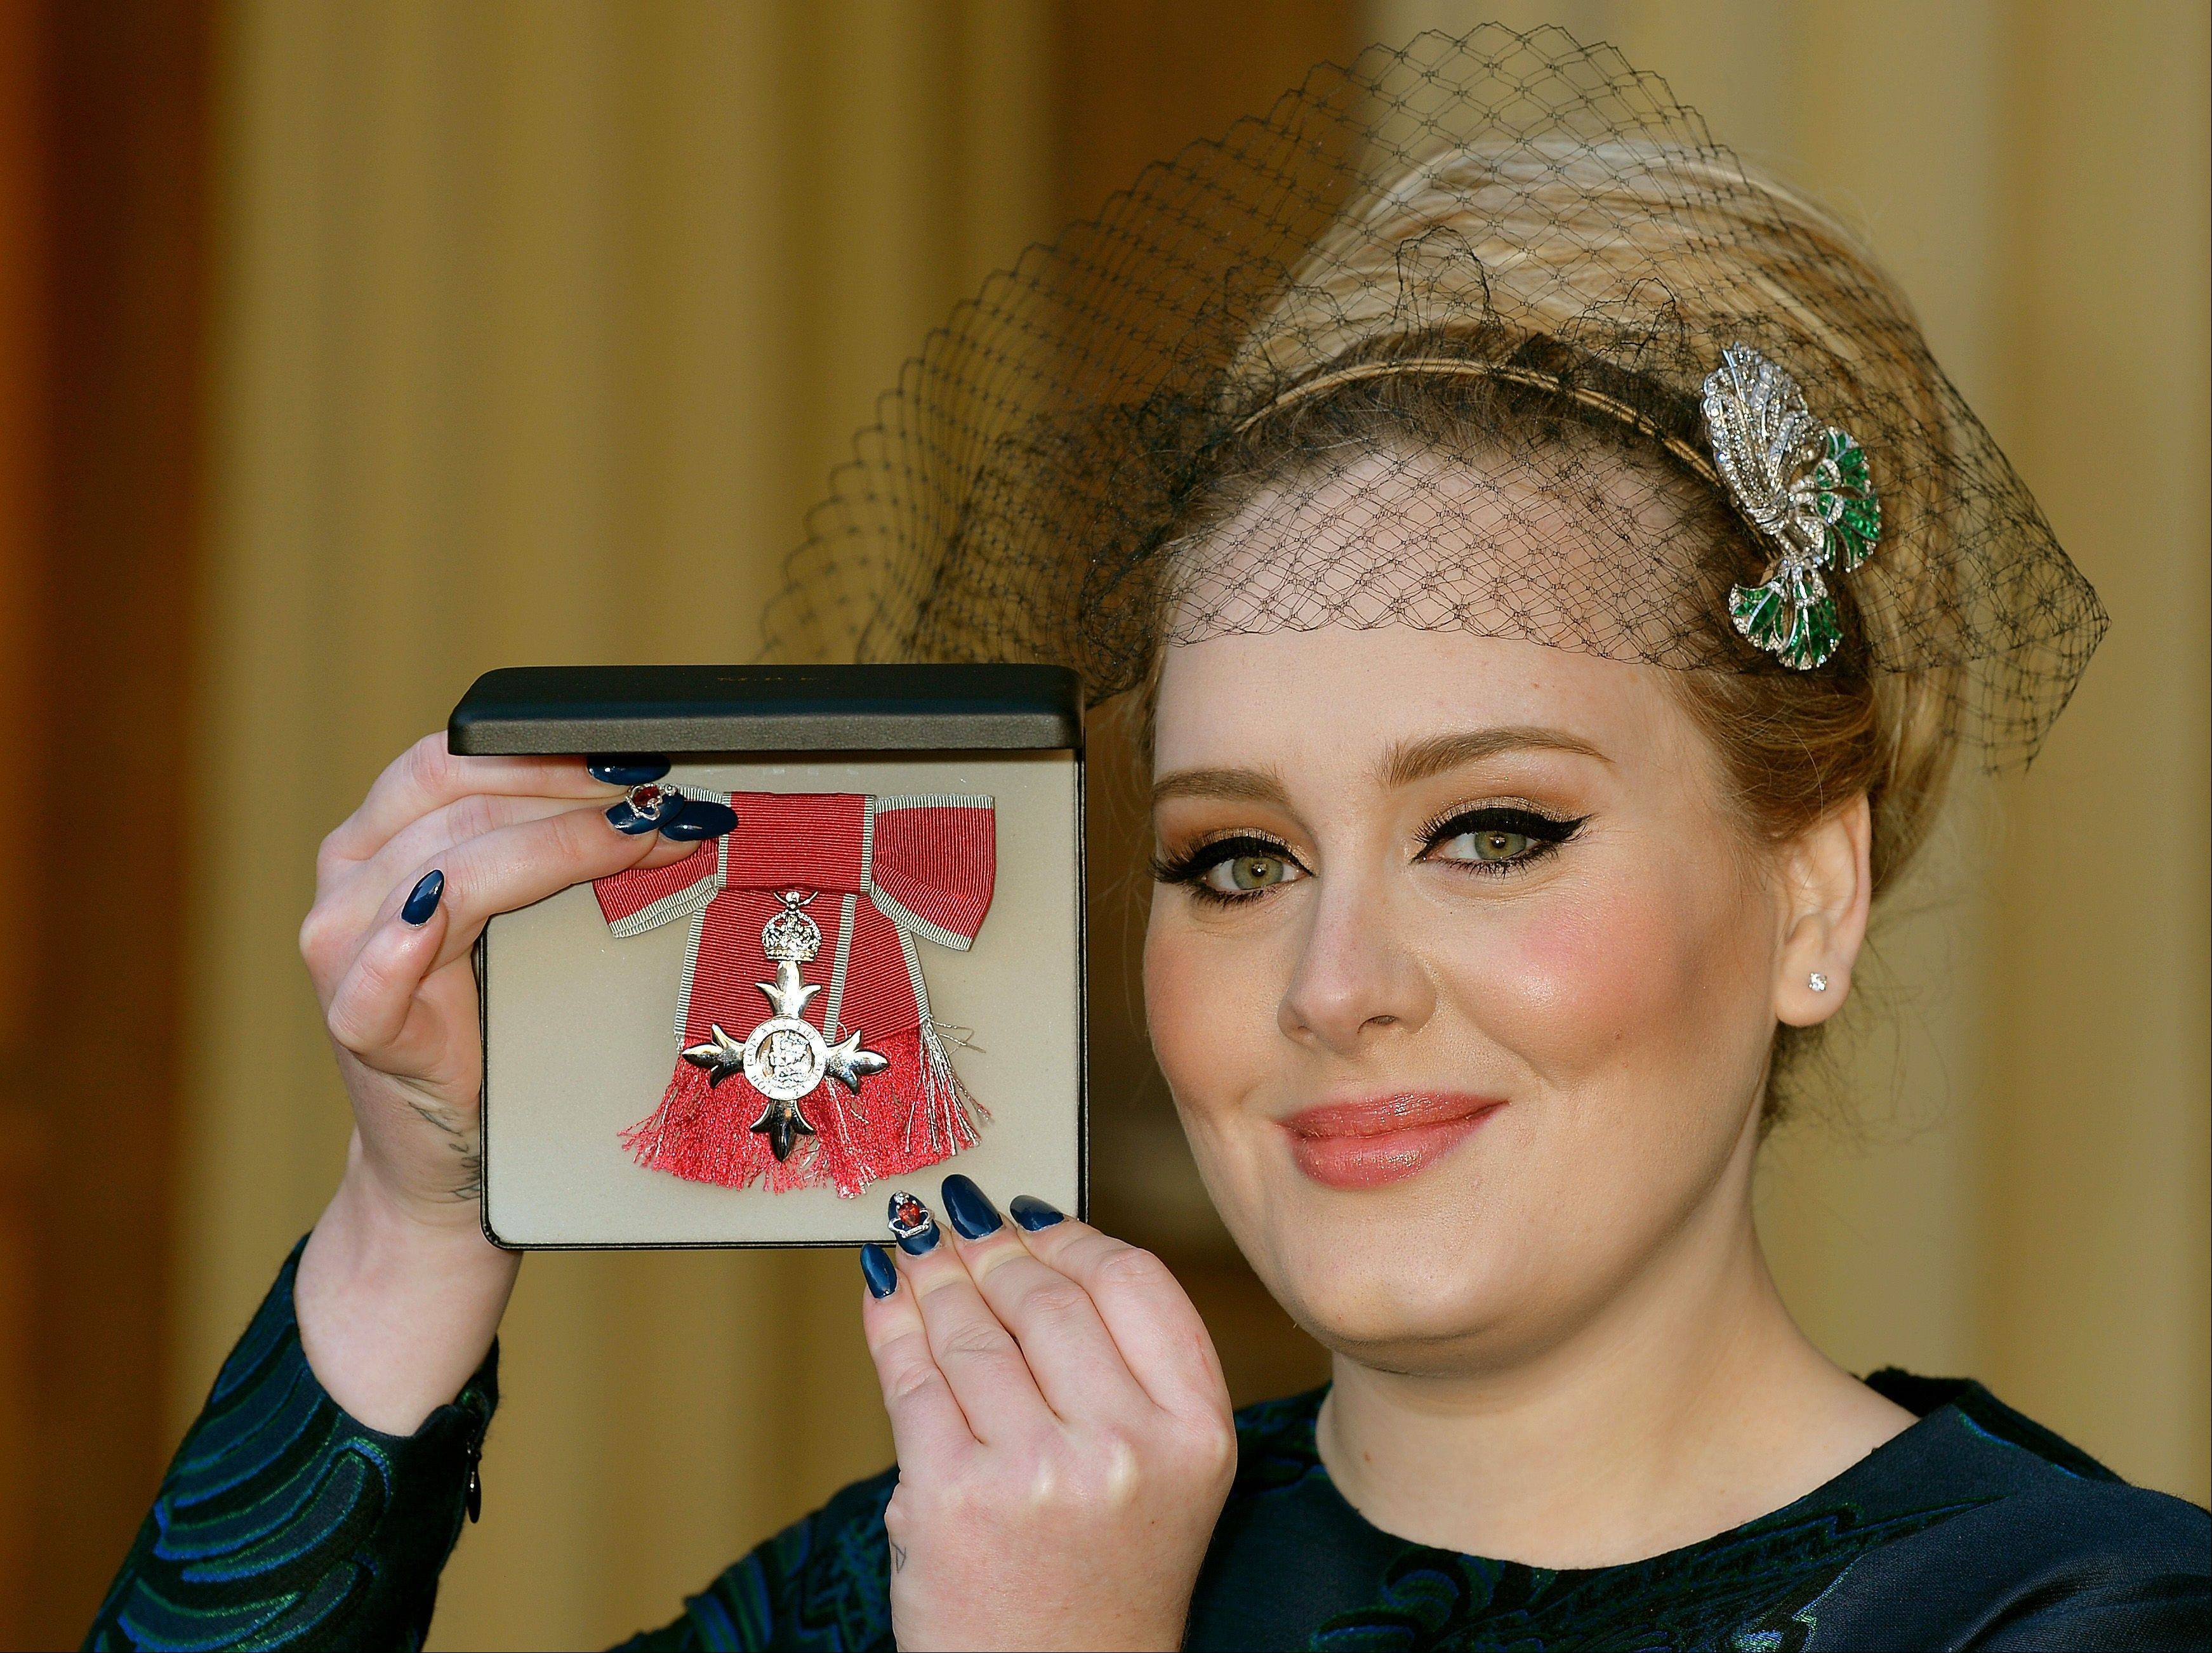 British singer Adele Adkins holds her MBE for services to music presented to her by the Prince of Wales at Buckingham Palace in London, Thursday, Dec. 19, 2013.